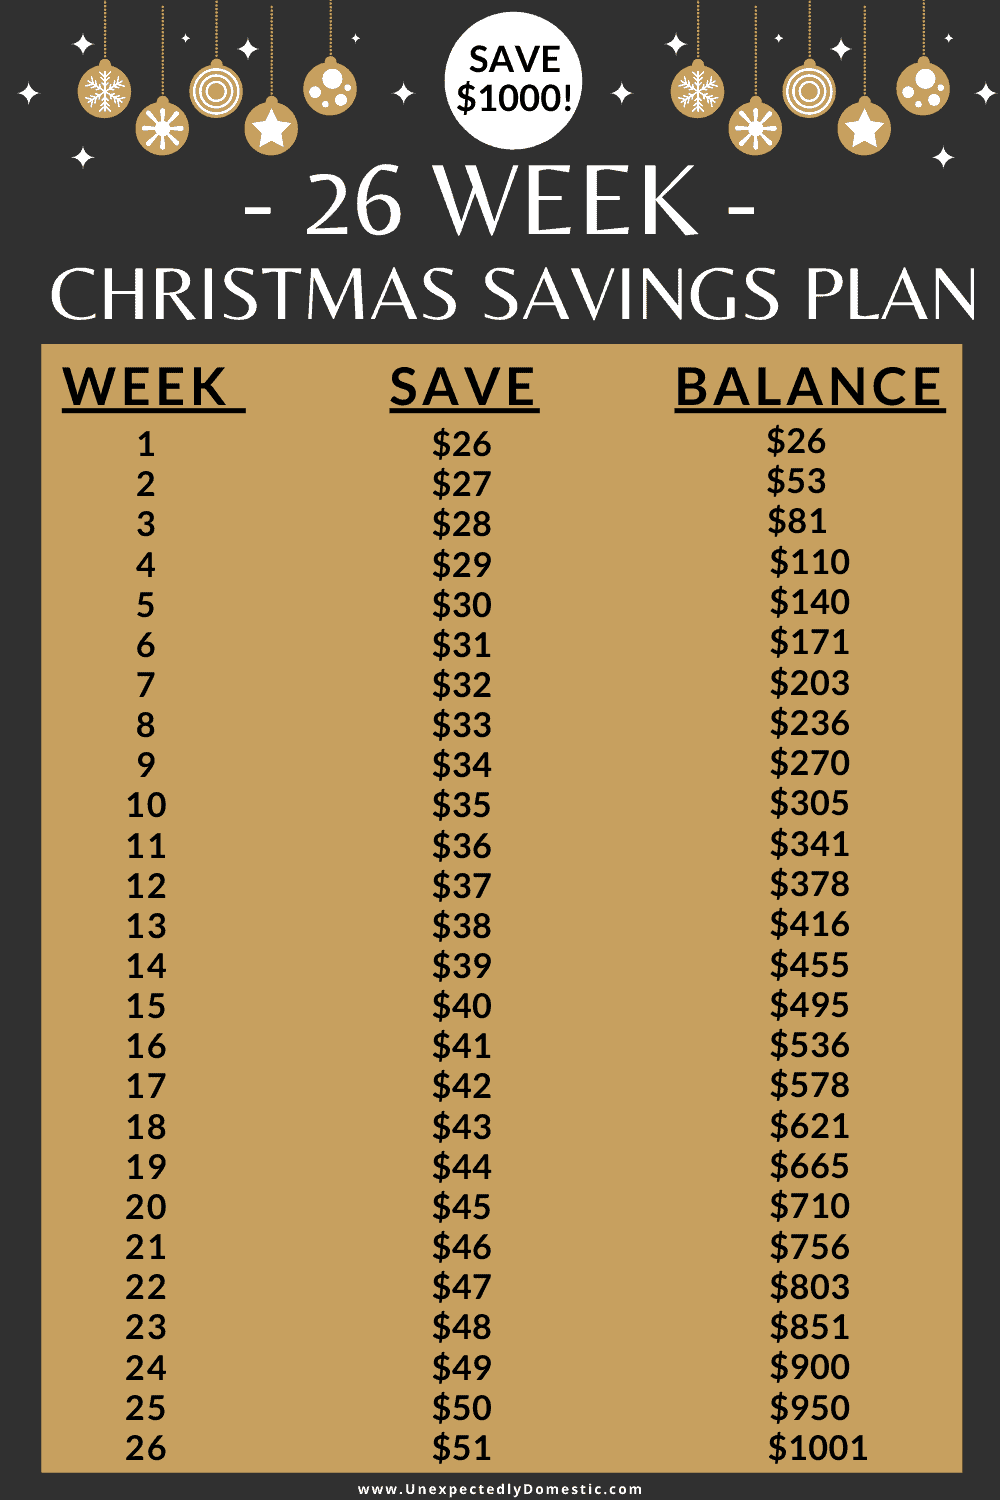 Learn how to save 00 in 26 weeks with this Christmas savings plan for! How to save money for Christmas this year, so you can actually enjoy the holiday season!